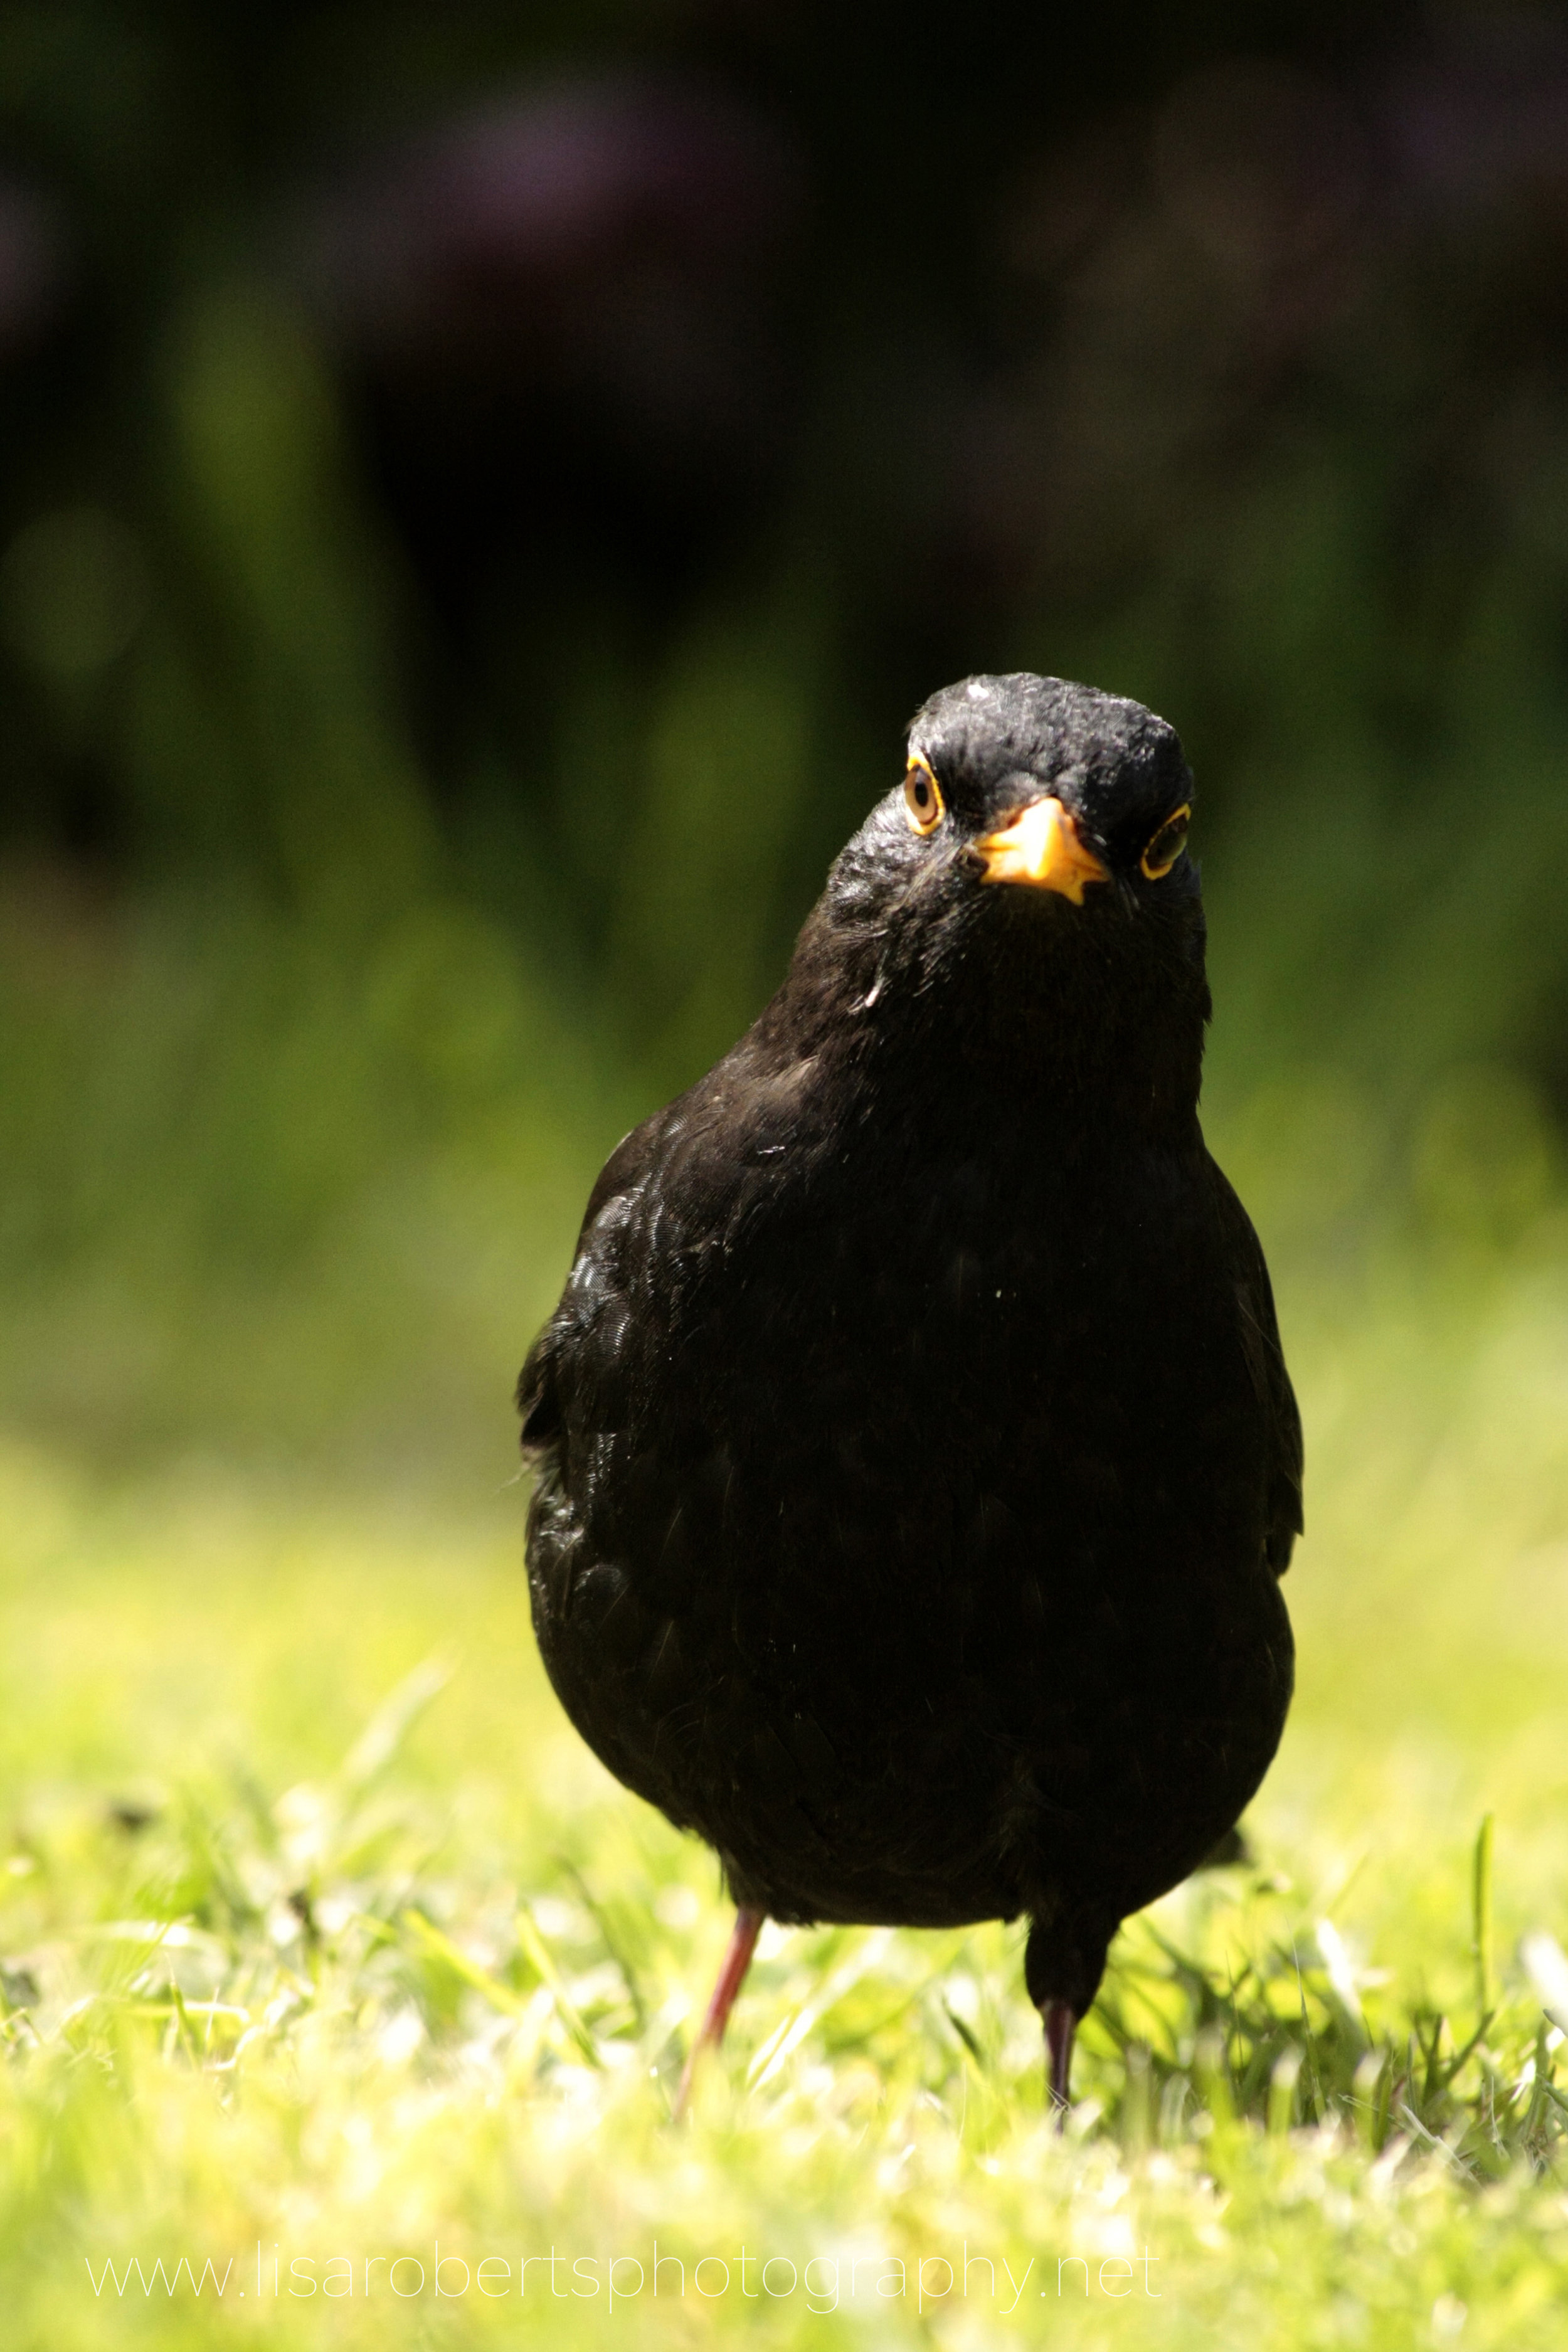 Male Blackbird face on